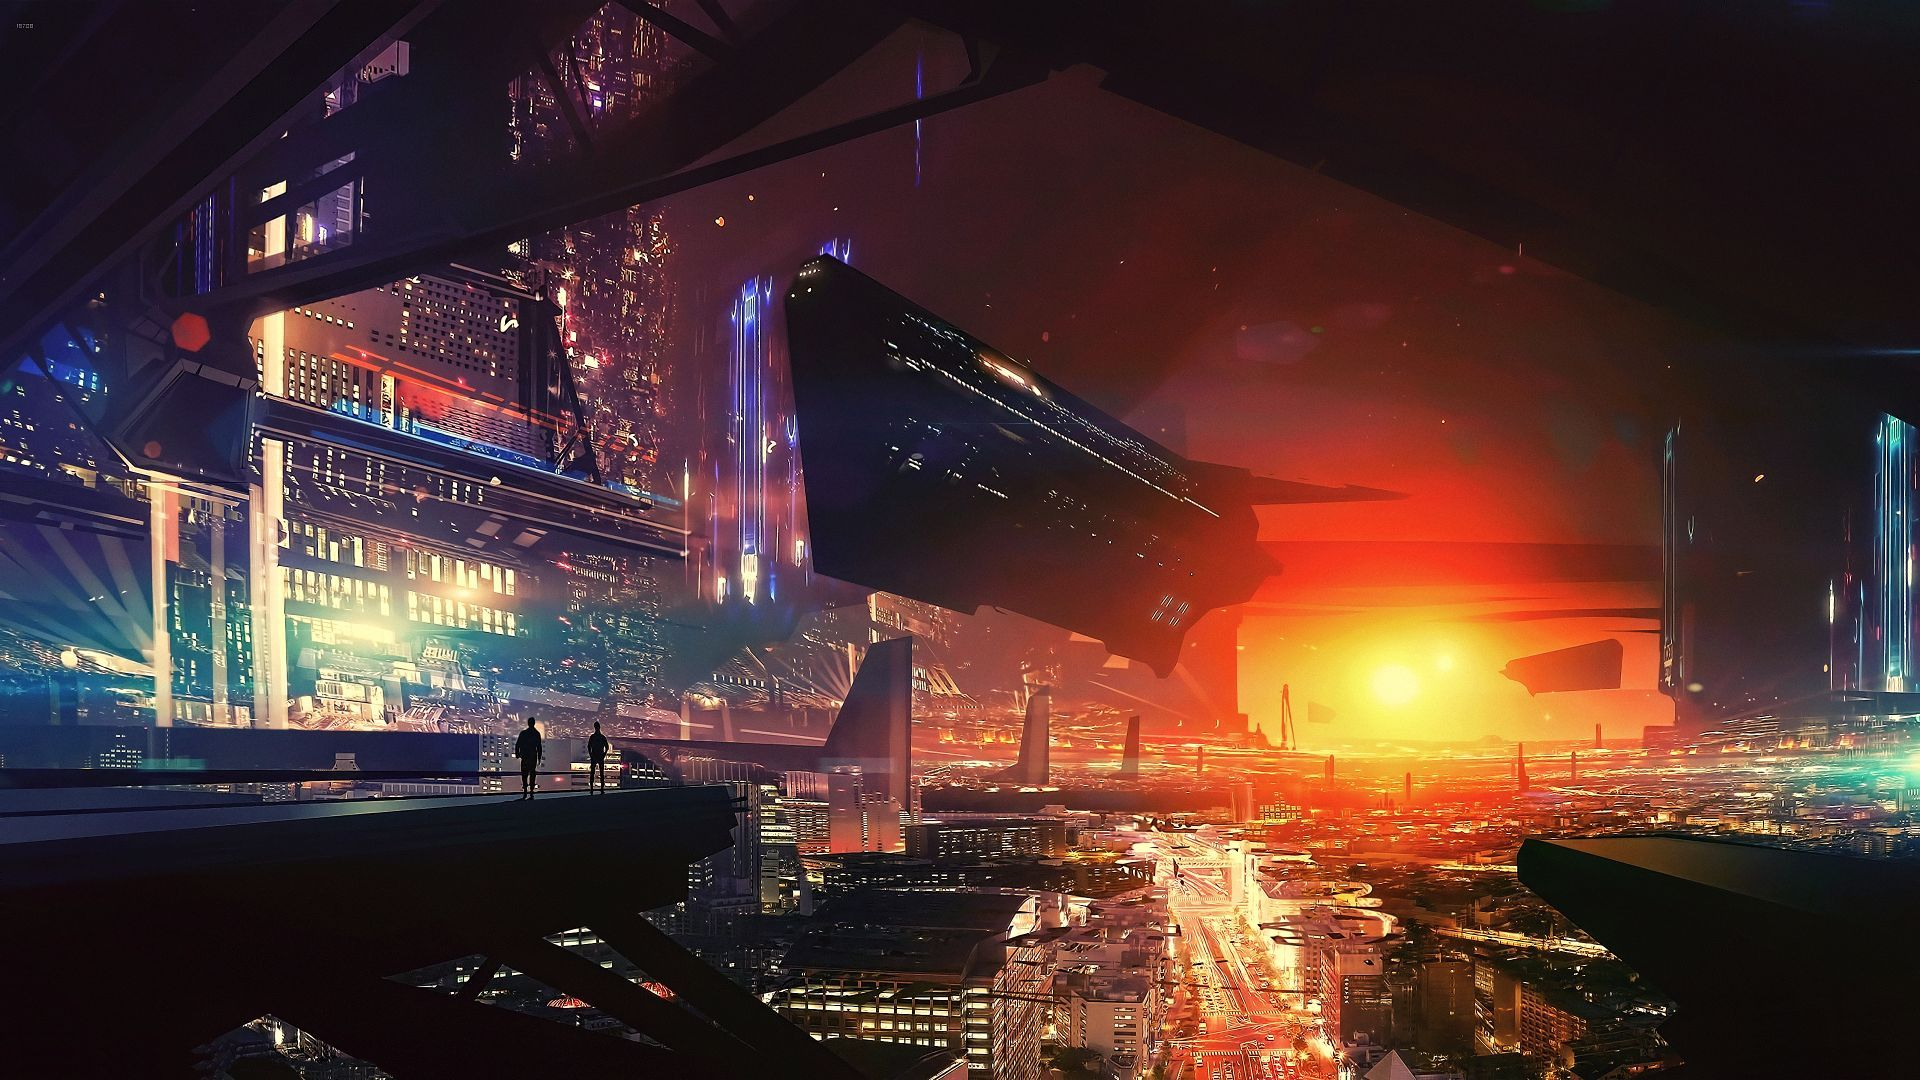 Wallpaper Spaceship Cyberpunk Futuristic City 4k Art 20323 Futuristic City World Wallpaper Digital Wallpaper